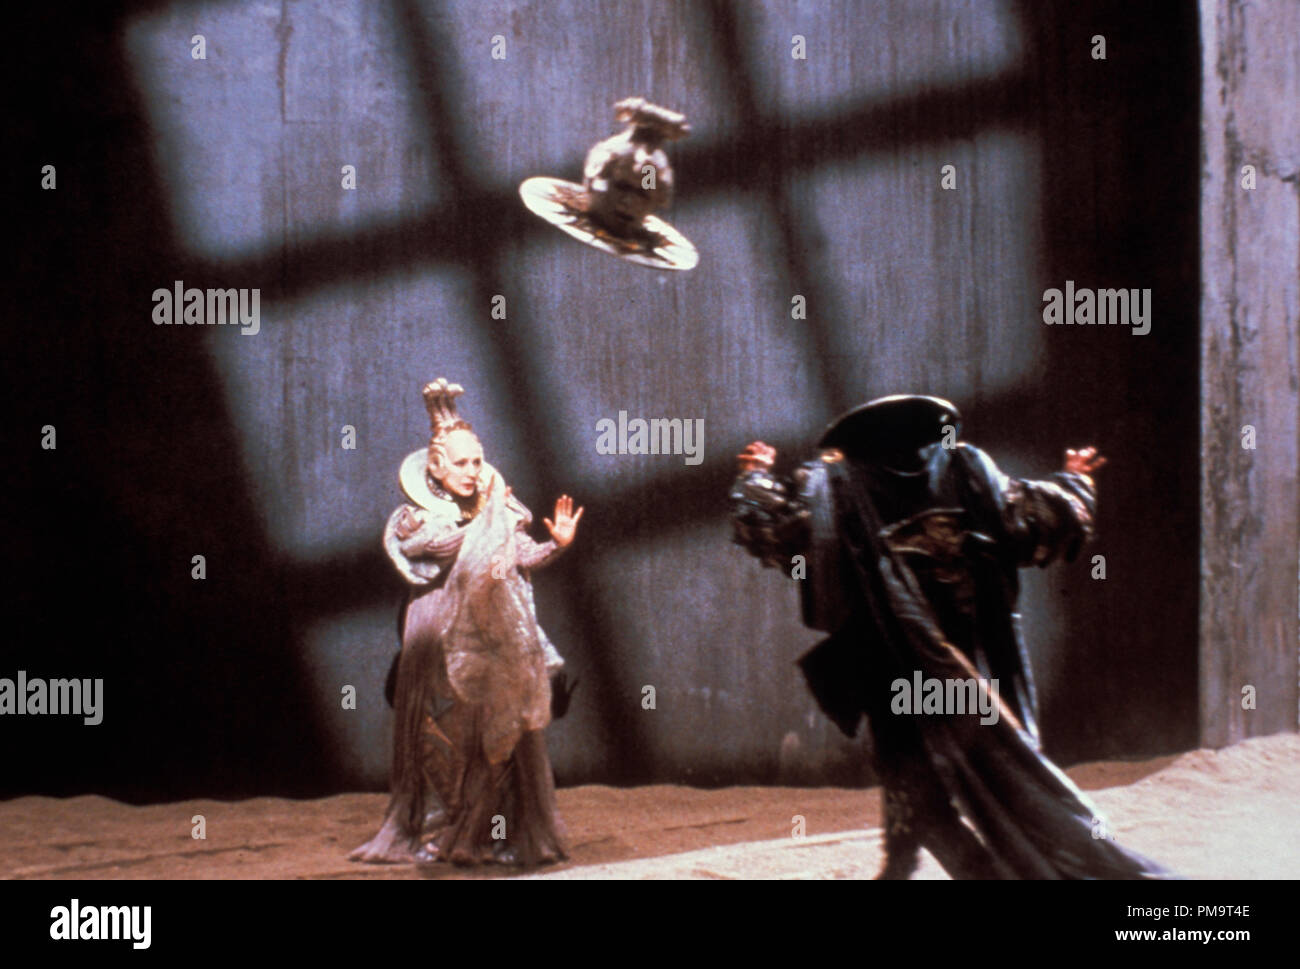 """Studio Publicity Still from """"The Adventures of Baron Munchausen"""" © 1988 Columbia Photo Credit: Franco Bellomo All Rights Reserved   File Reference # 31694073THA  For Editorial Use Only Stock Photo"""